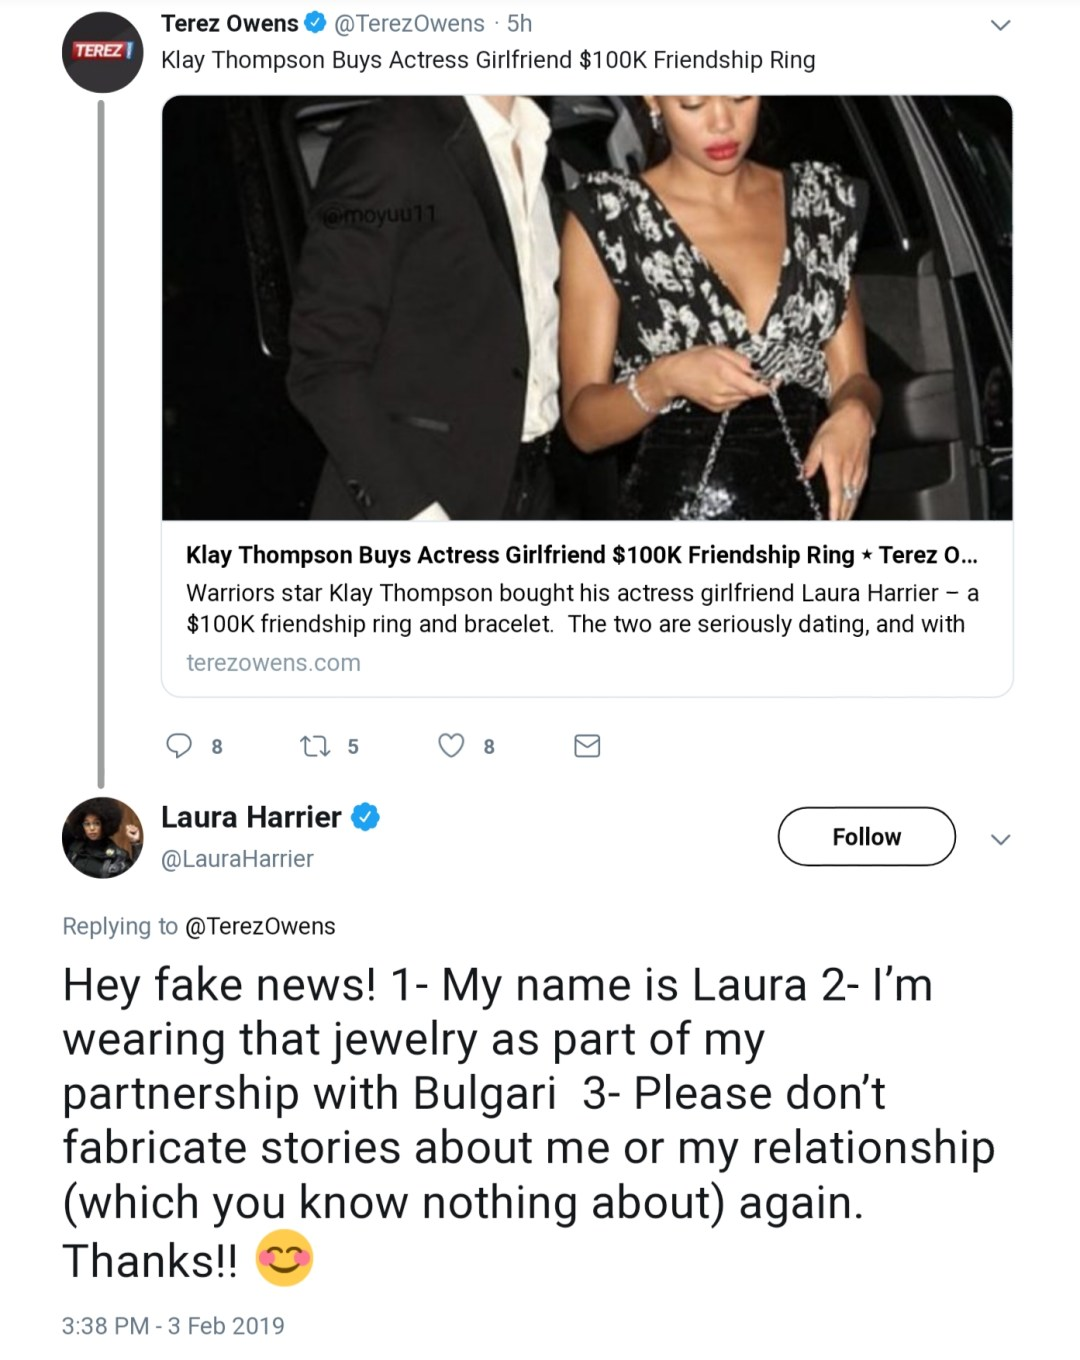 Laura Harrier Calls Fake News on Story About Klay Thompson